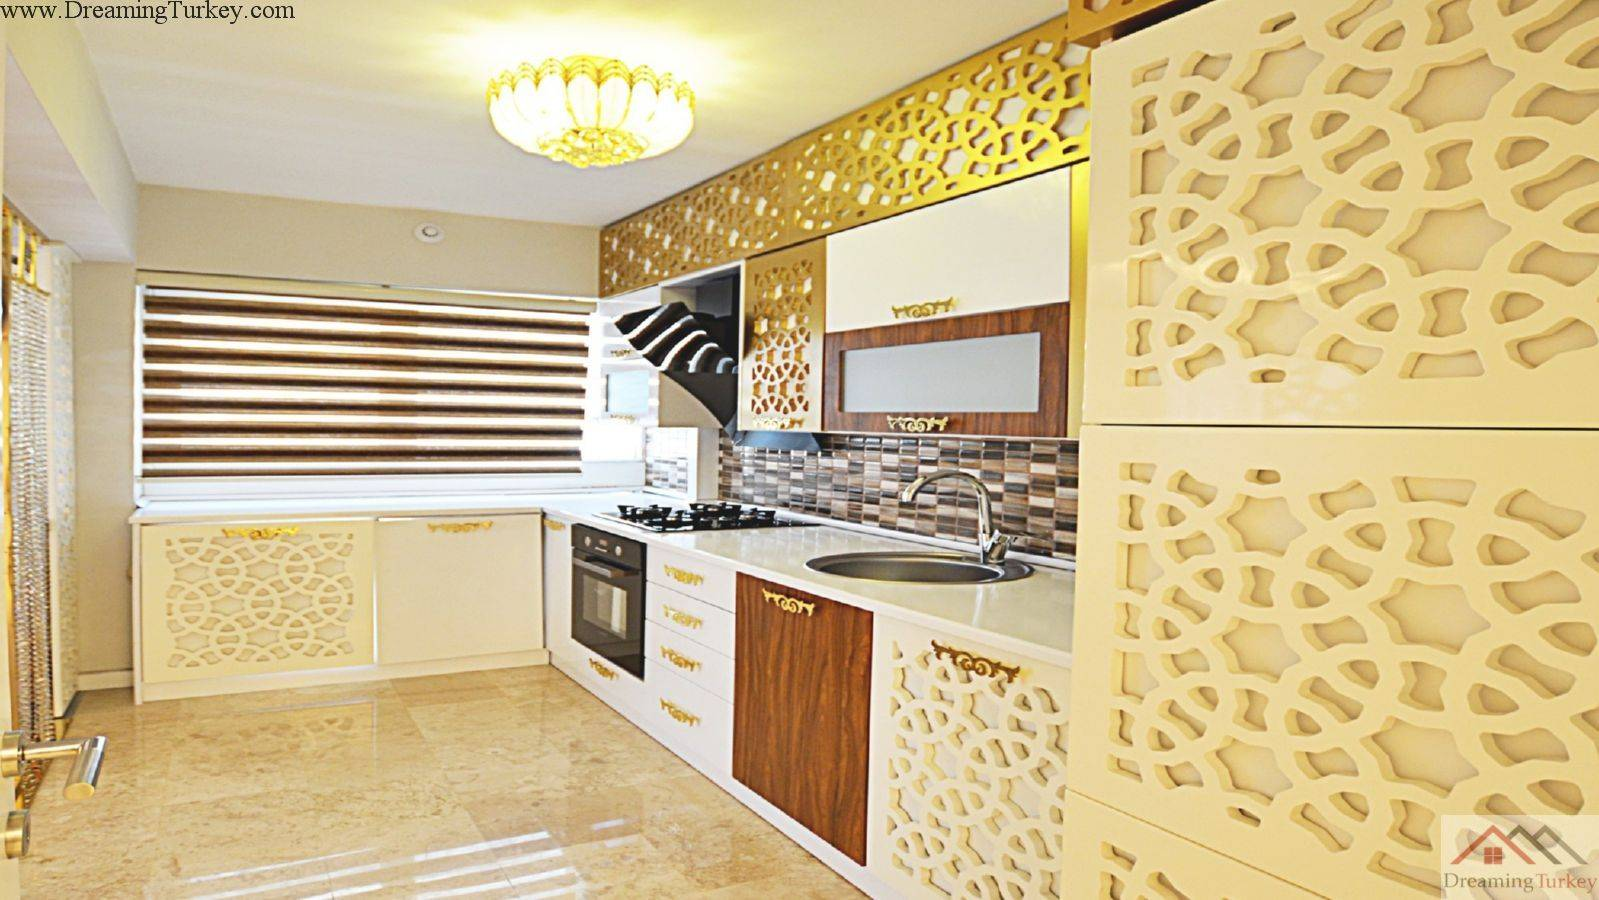 1-Bedroom Apartment inside a Complex in Istanbul